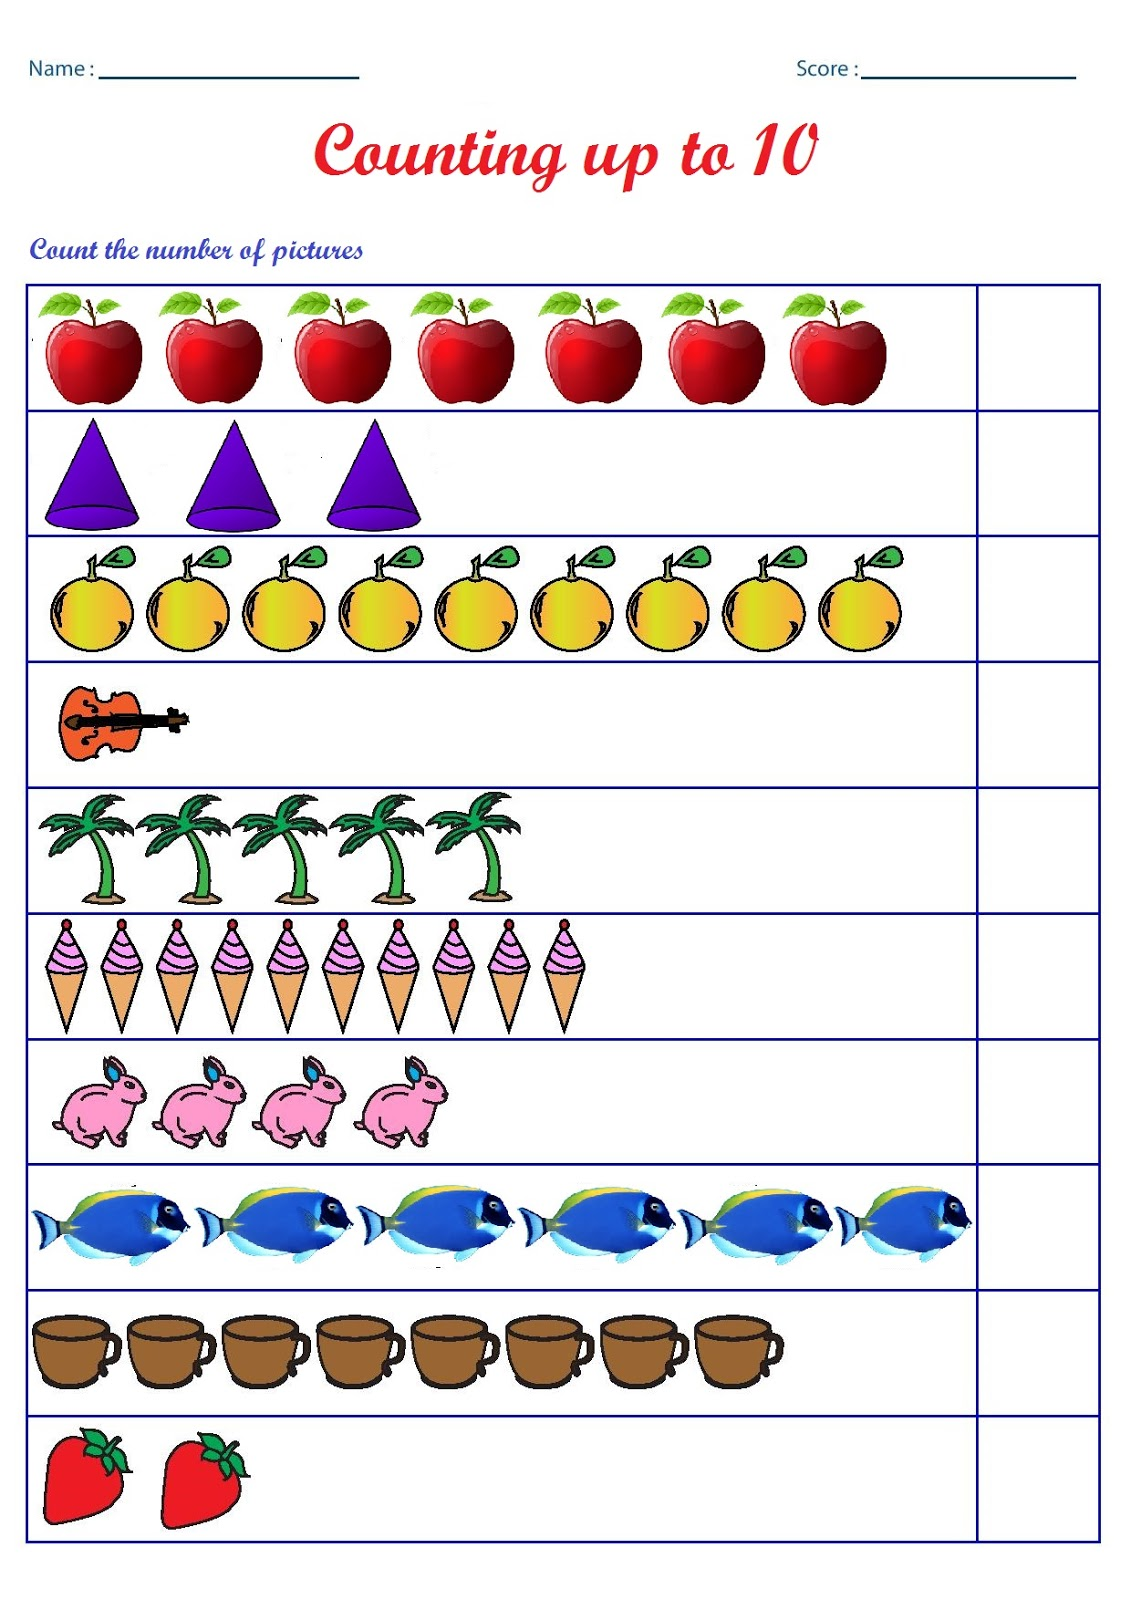 Uncategorized Counting Worksheets For Kindergarten kindergarten worksheets counting count the number of tracing letter addition subtraction multiplicat